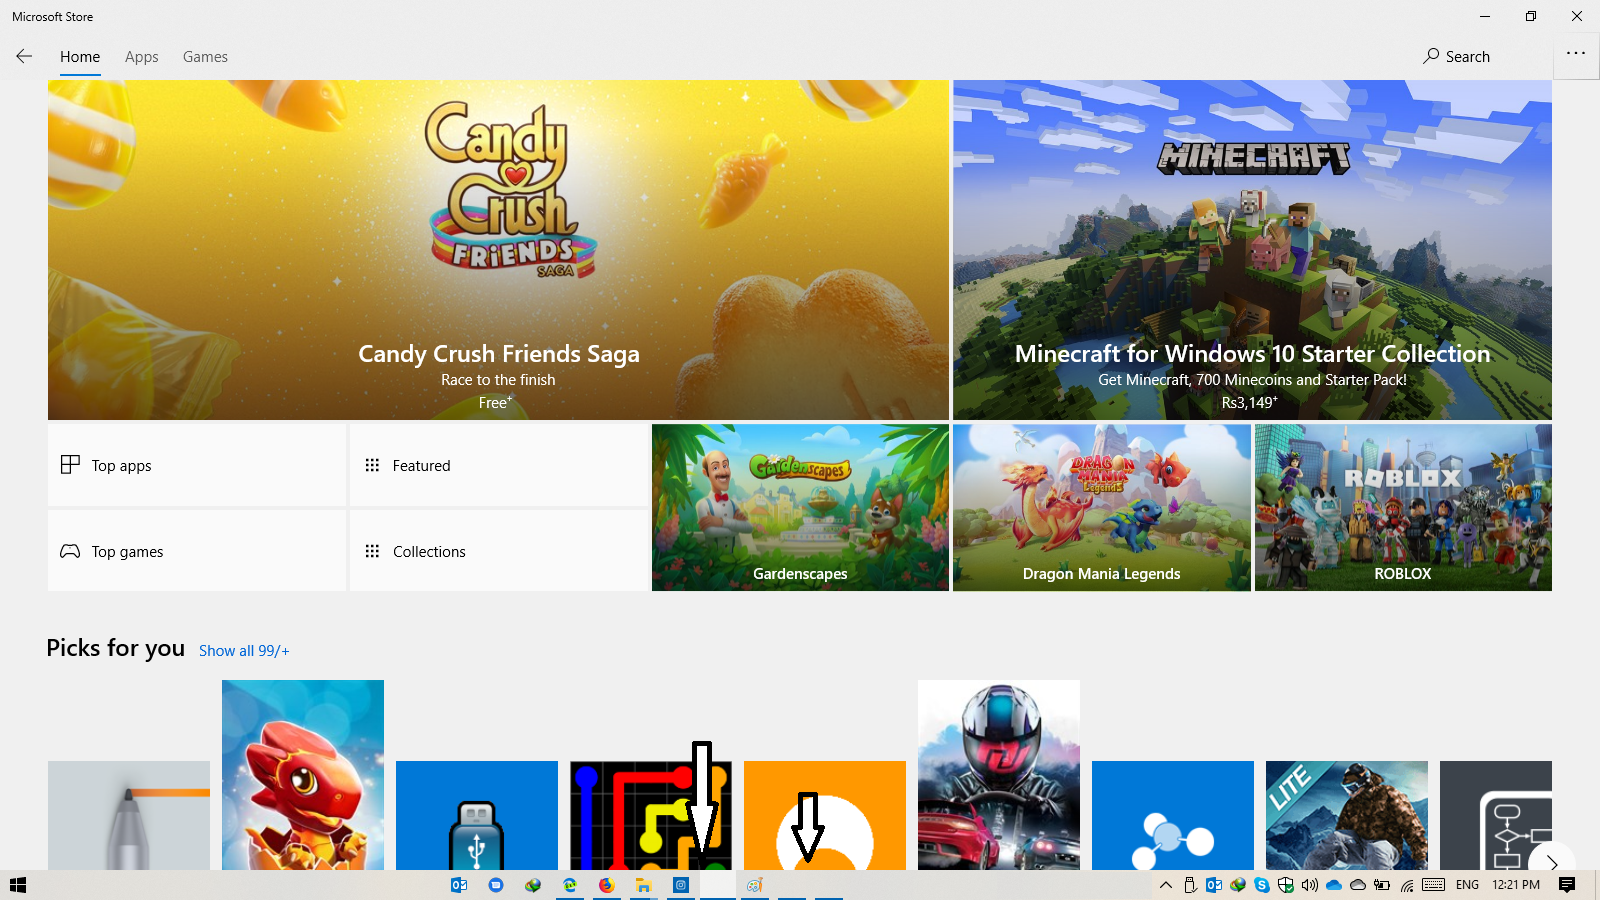 No taskbar icons for Windows Store Apps 49e26d67-ad5a-4f32-88e4-fe5f3c3c94f9?upload=true.png